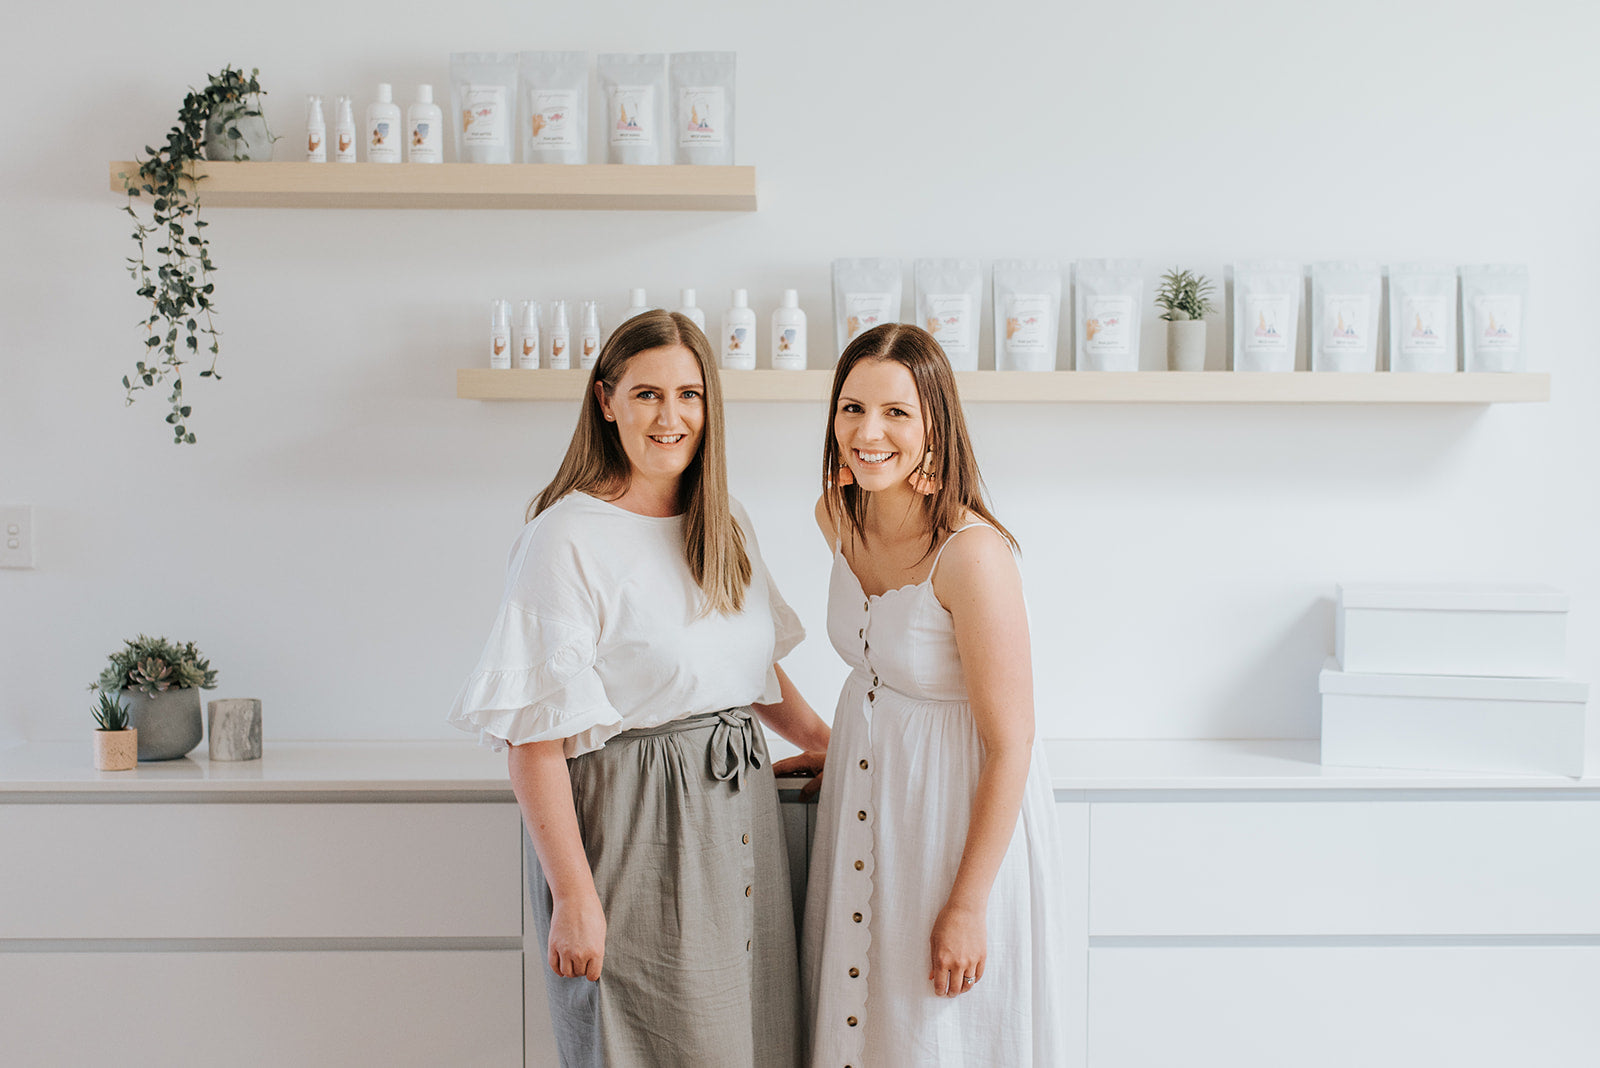 Holly and Marie - Co-founders of facing motherhood